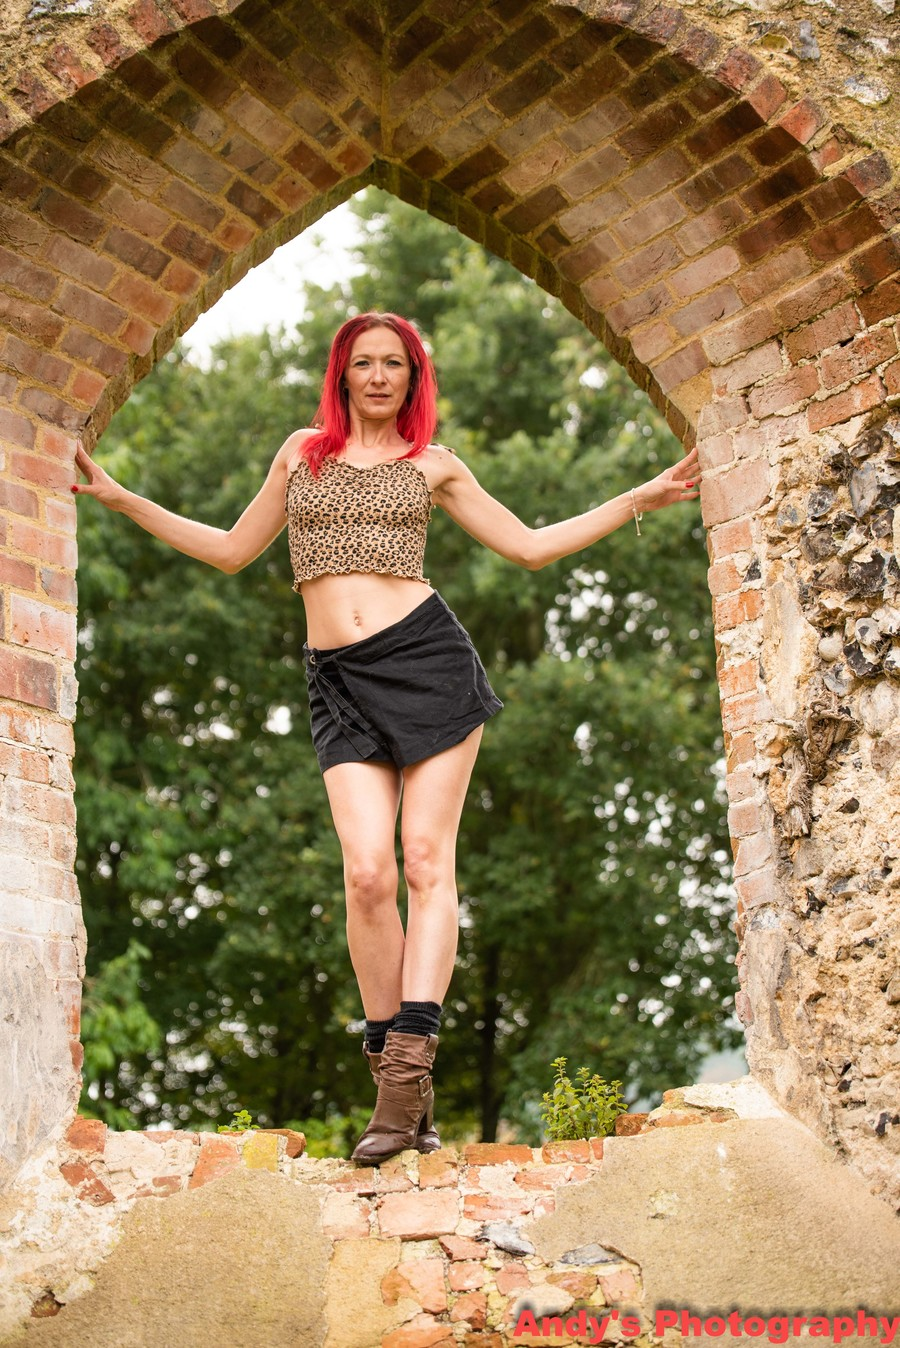 On top of the world !! / Photography by Andy's photography, Model Lou1111, Post processing by Andy's photography / Uploaded 11th October 2021 @ 07:27 PM